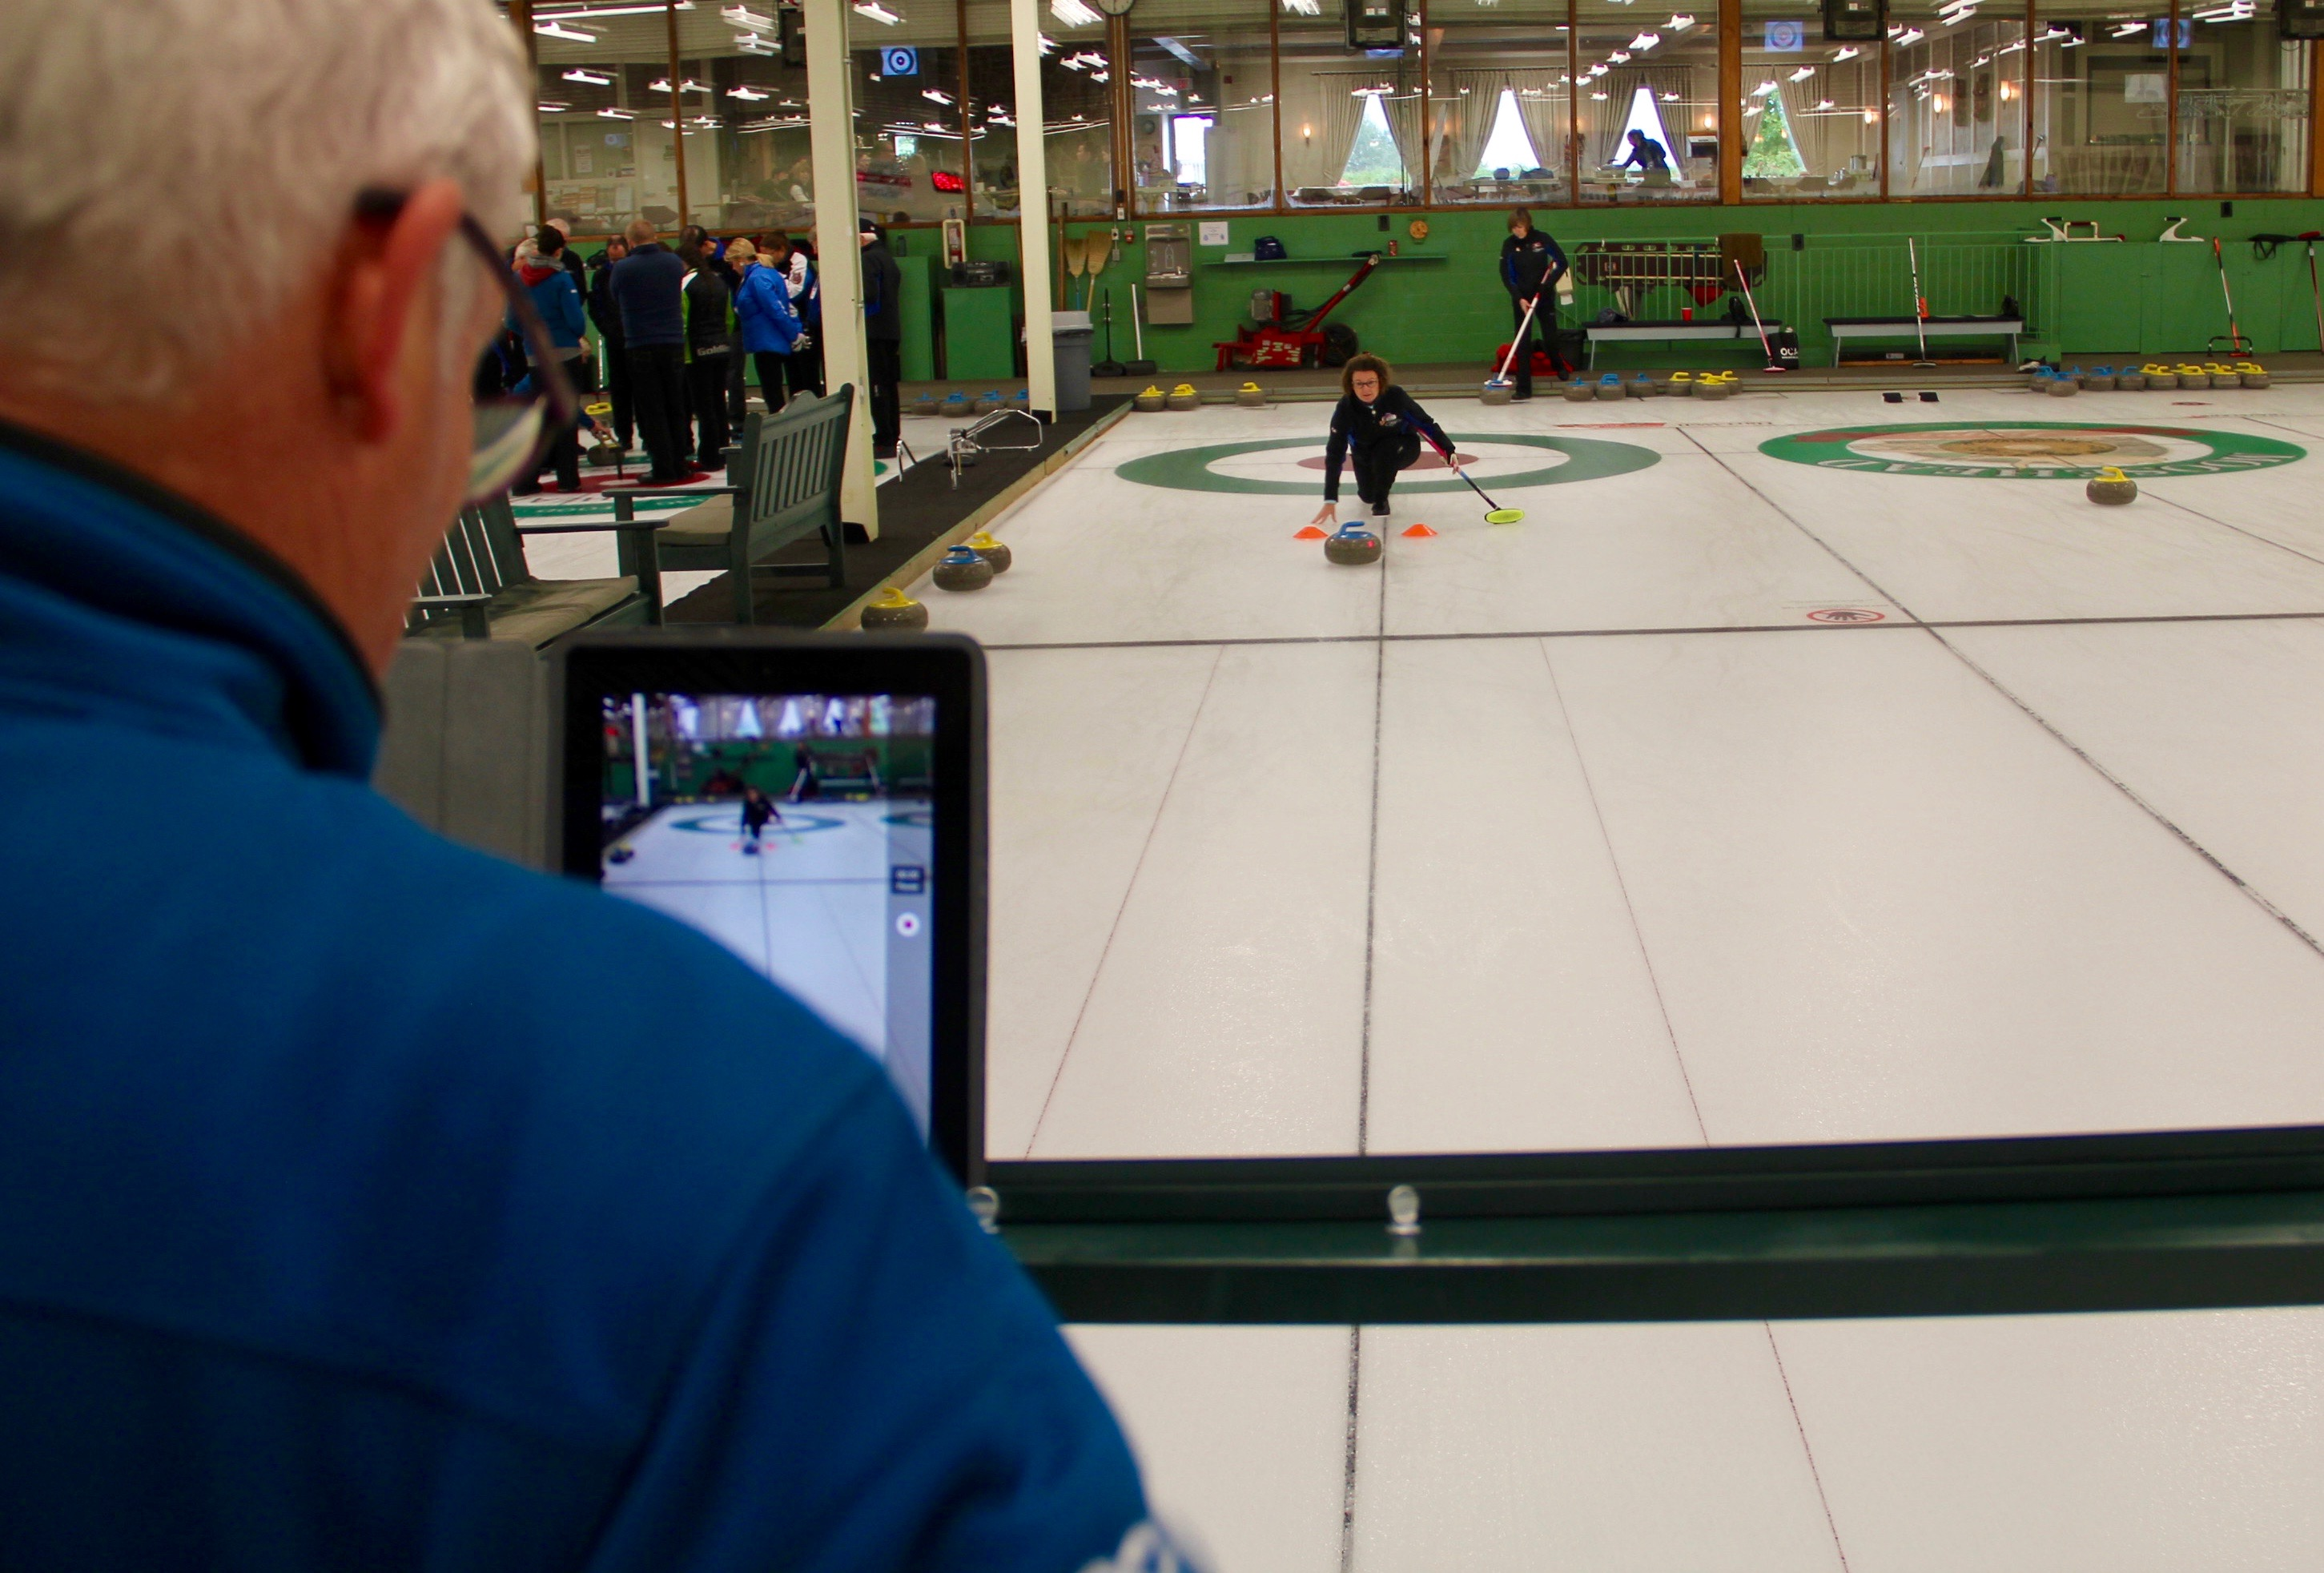 Course Image Analyze Technical Performance - Competition Development